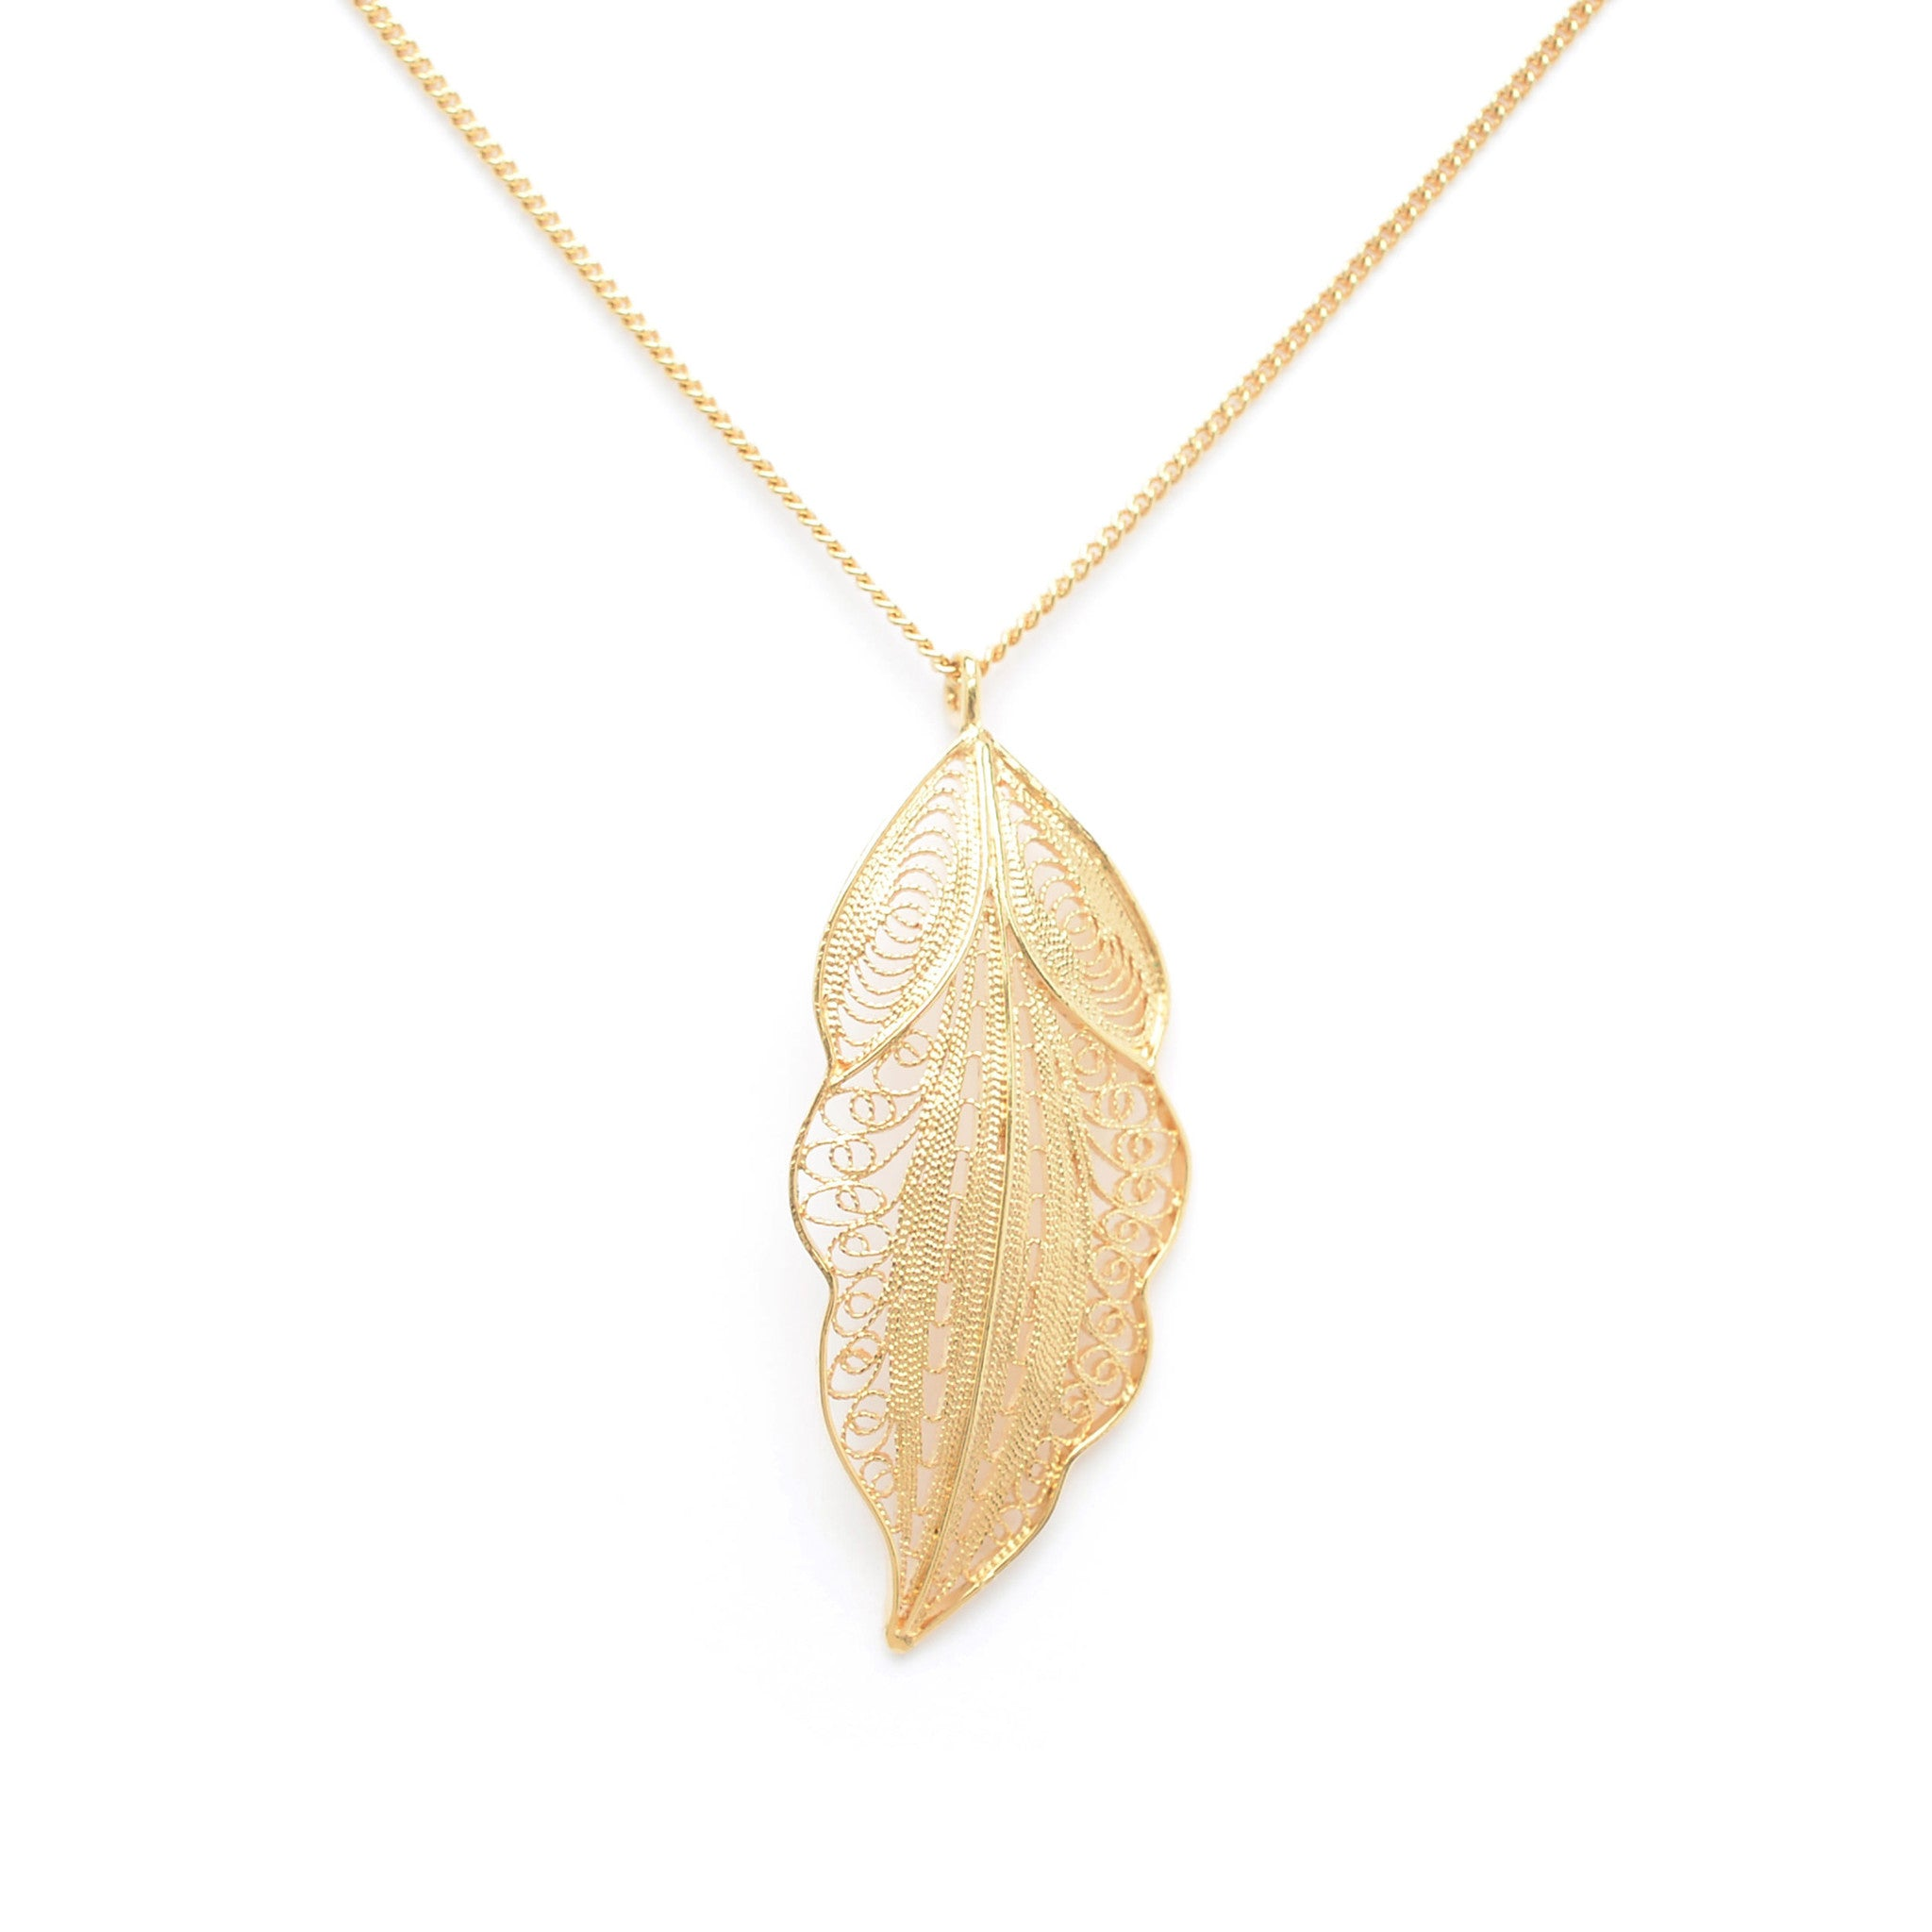 Necklace with filigree leaf pendant by wouters hendrix 1 aloadofball Image collections